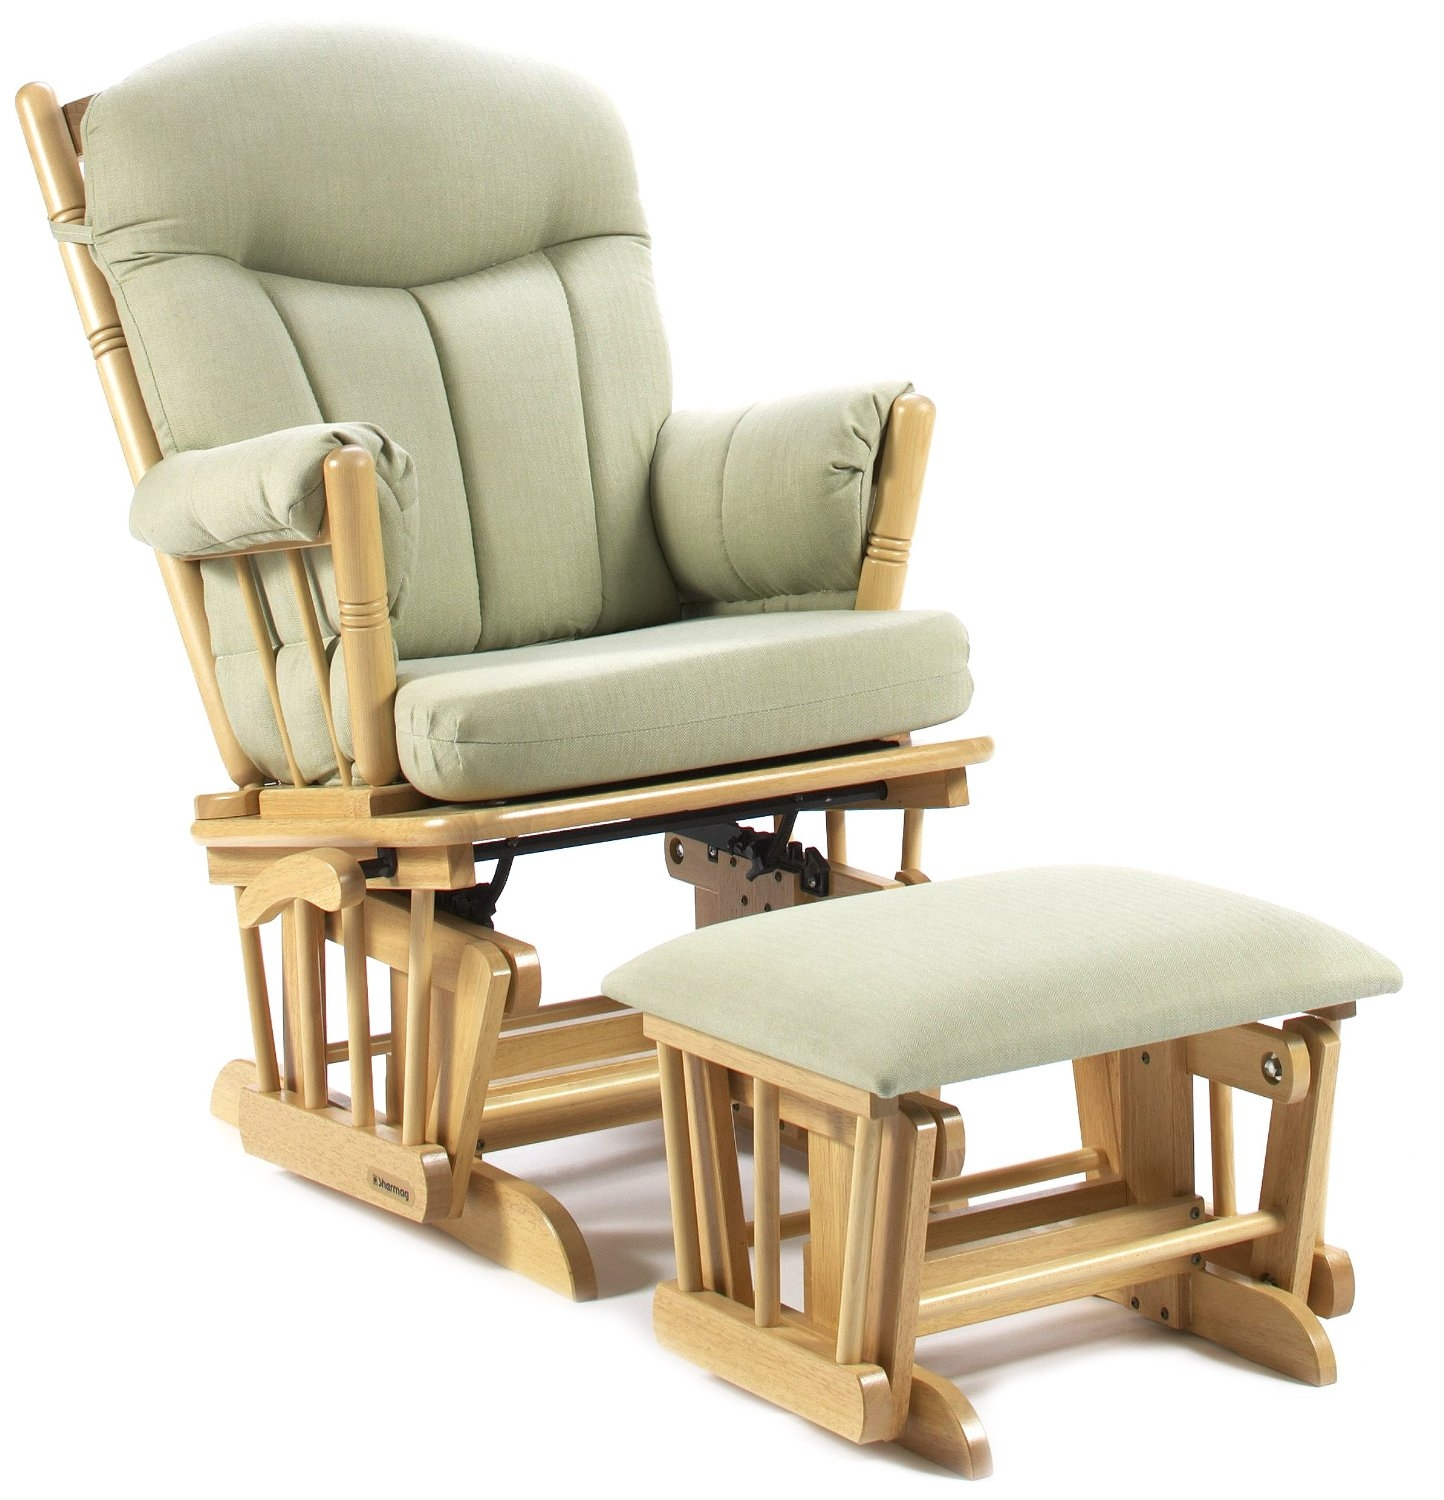 Shermag Post Glider Rocker Combo, Natural/Light Green